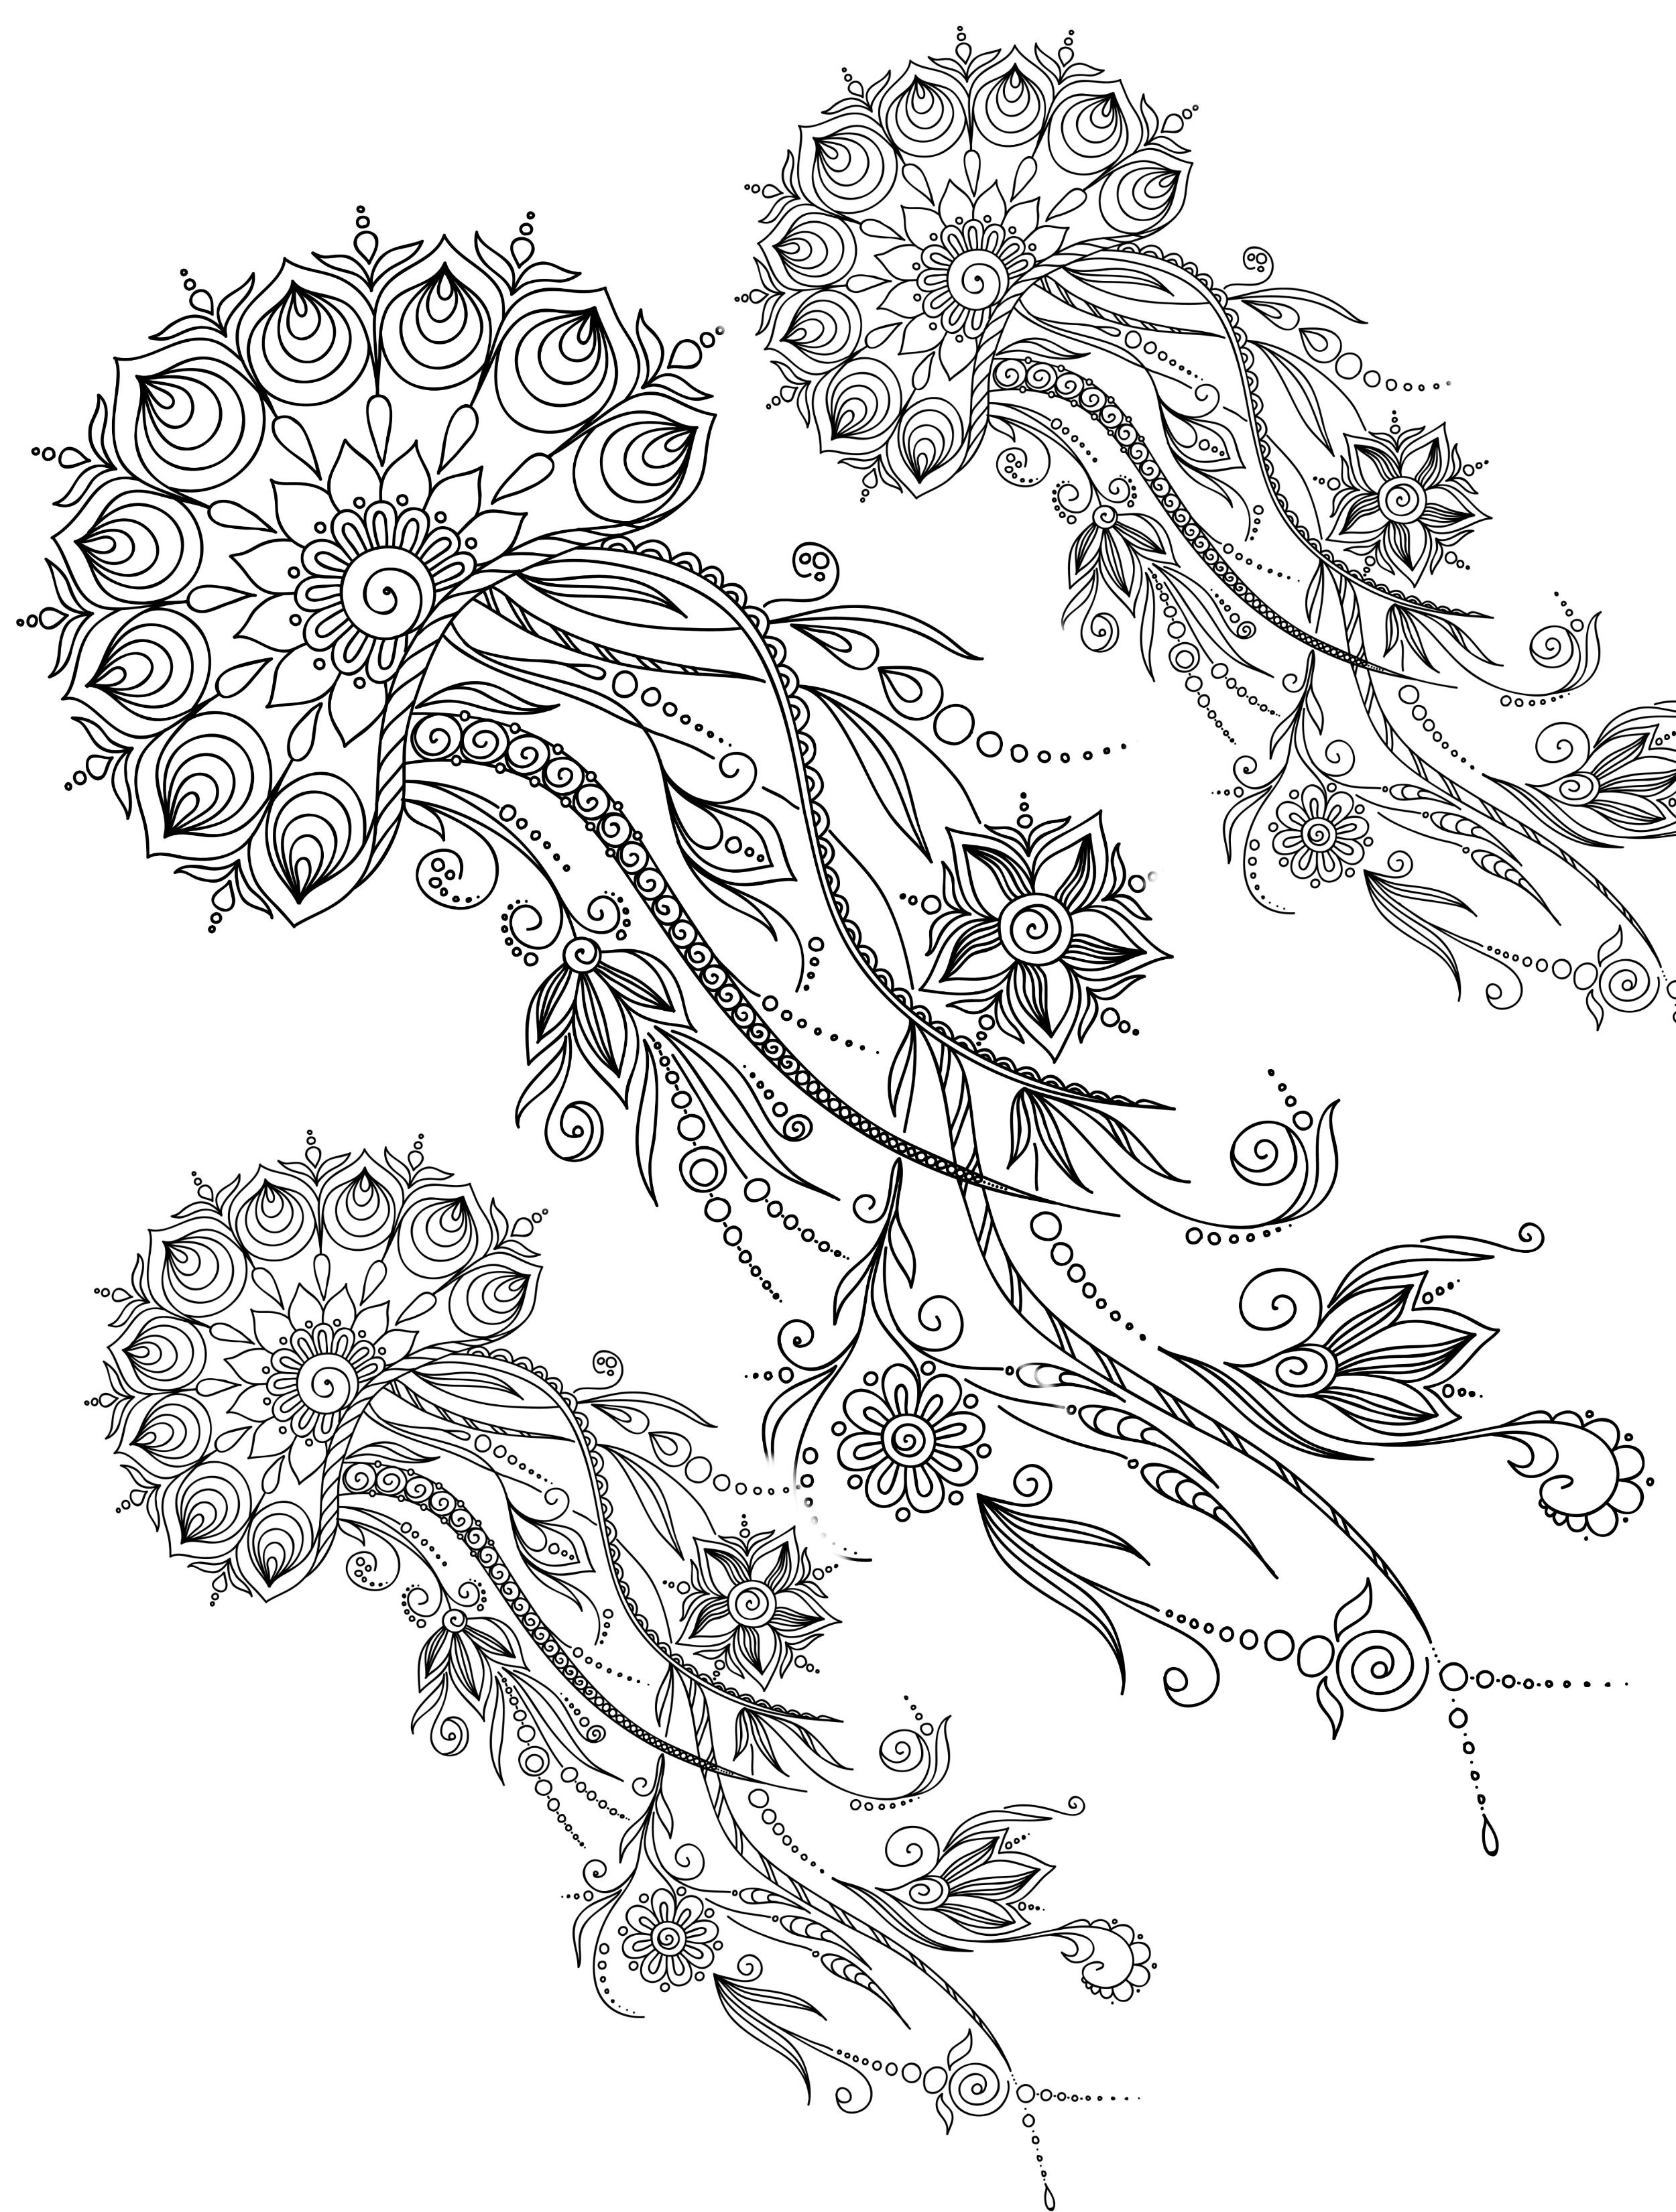 20 Free Printable Adult Coloring Pages